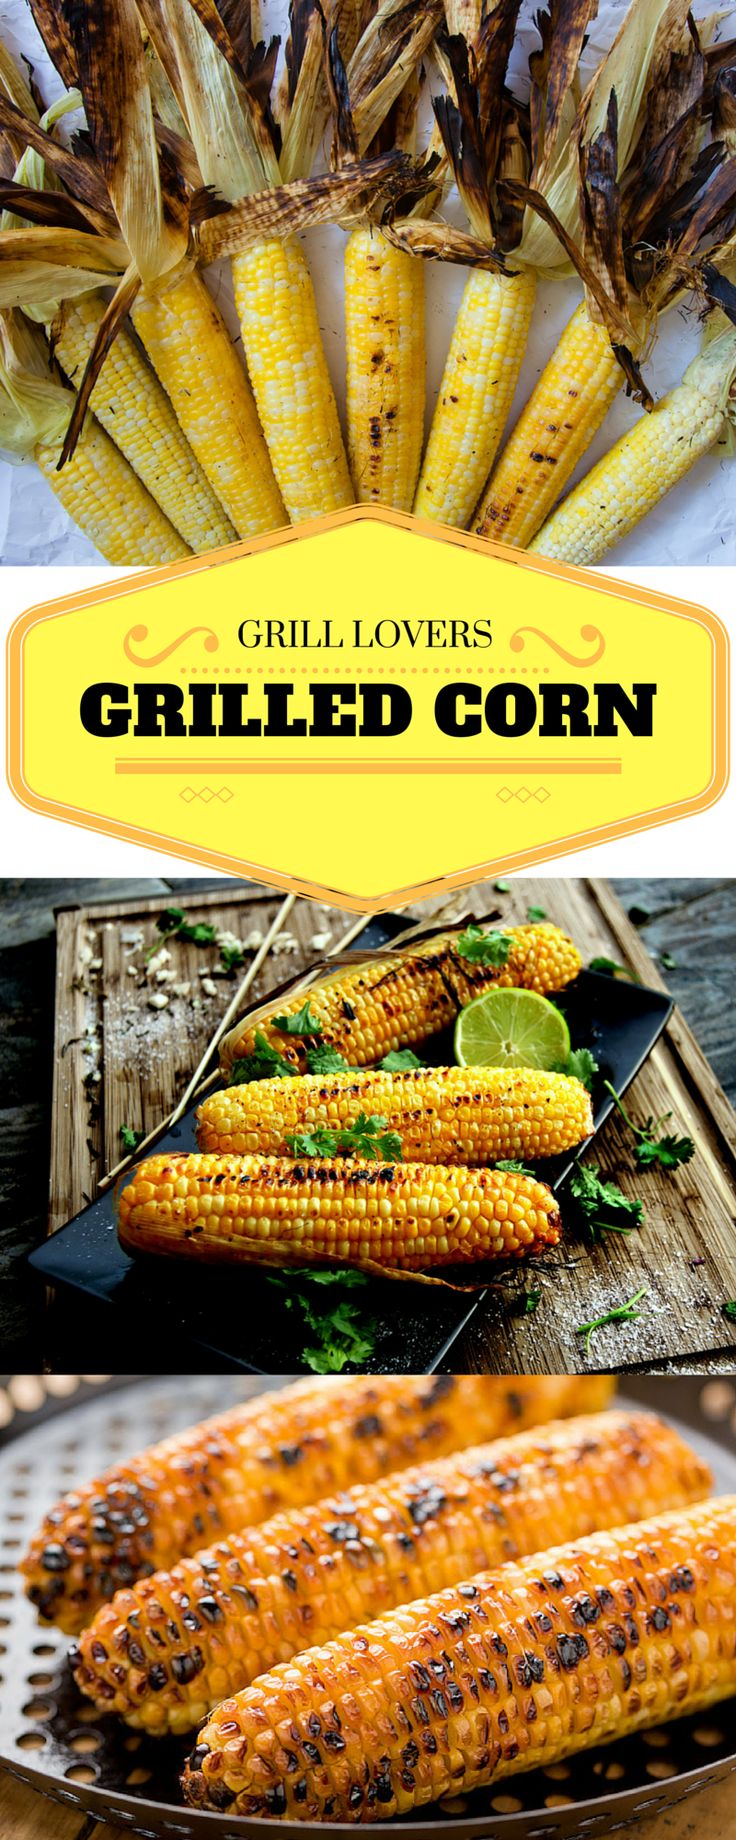 Best 25 grilled corn on cob ideas on pinterest bbq corn on the best 25 grilled corn on cob ideas on pinterest bbq corn on the cob corn on the grill and grilling corn ccuart Gallery